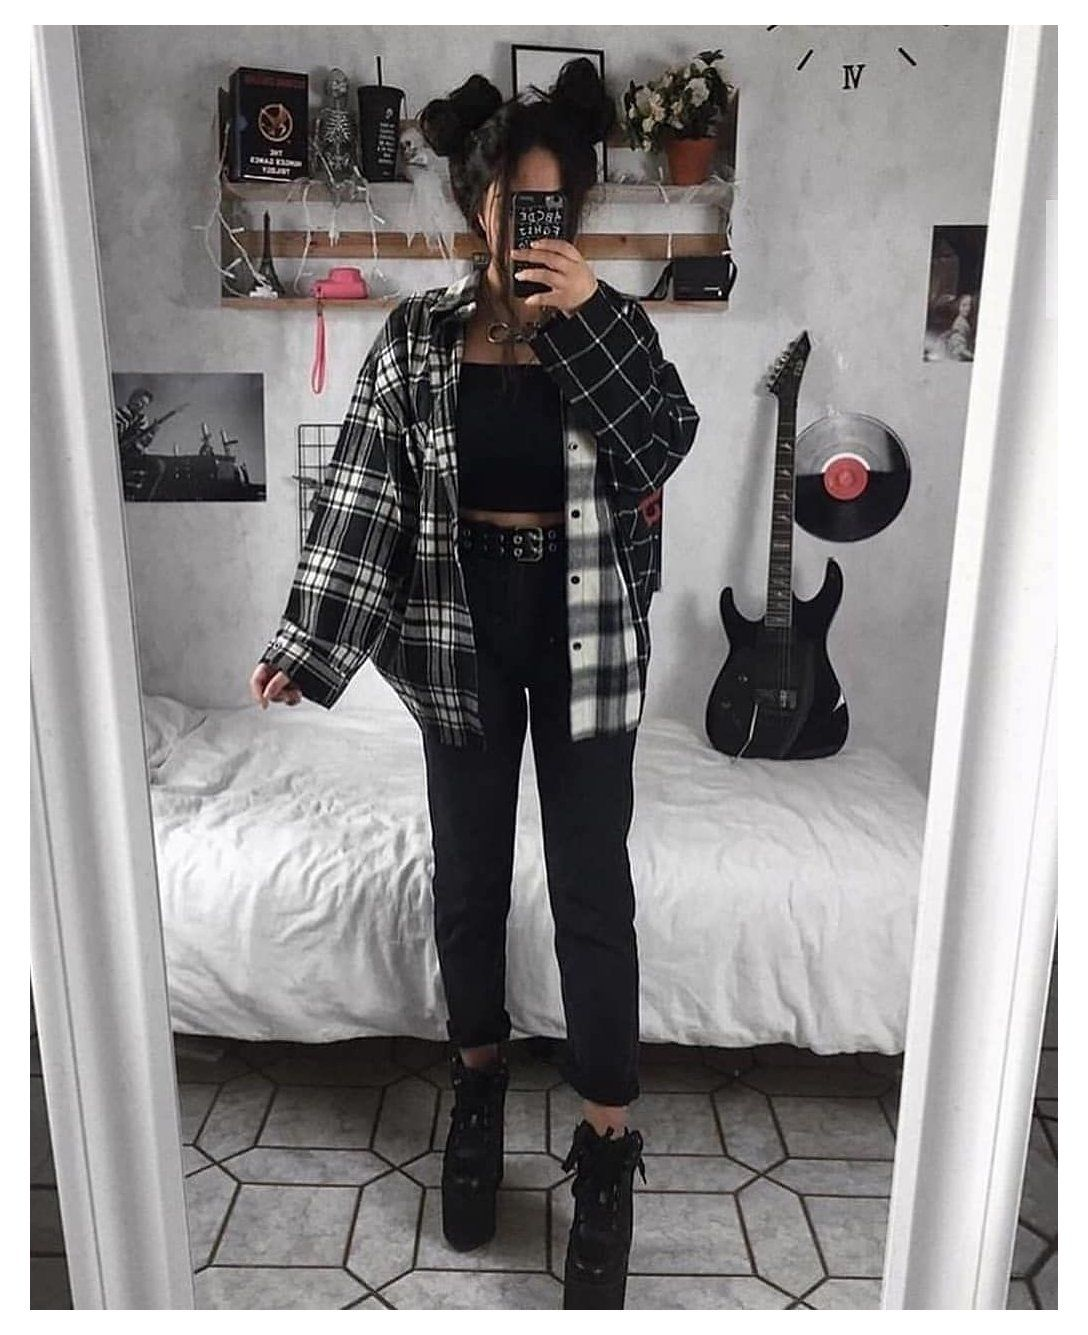 Aesthetic Clothes Black Girl Rock Fashion Grunge Grungeaesthetic Grungefashion Clothes 90sfa In 2020 Aesthetic Grunge Outfit Aesthetic Clothes Retro Outfits